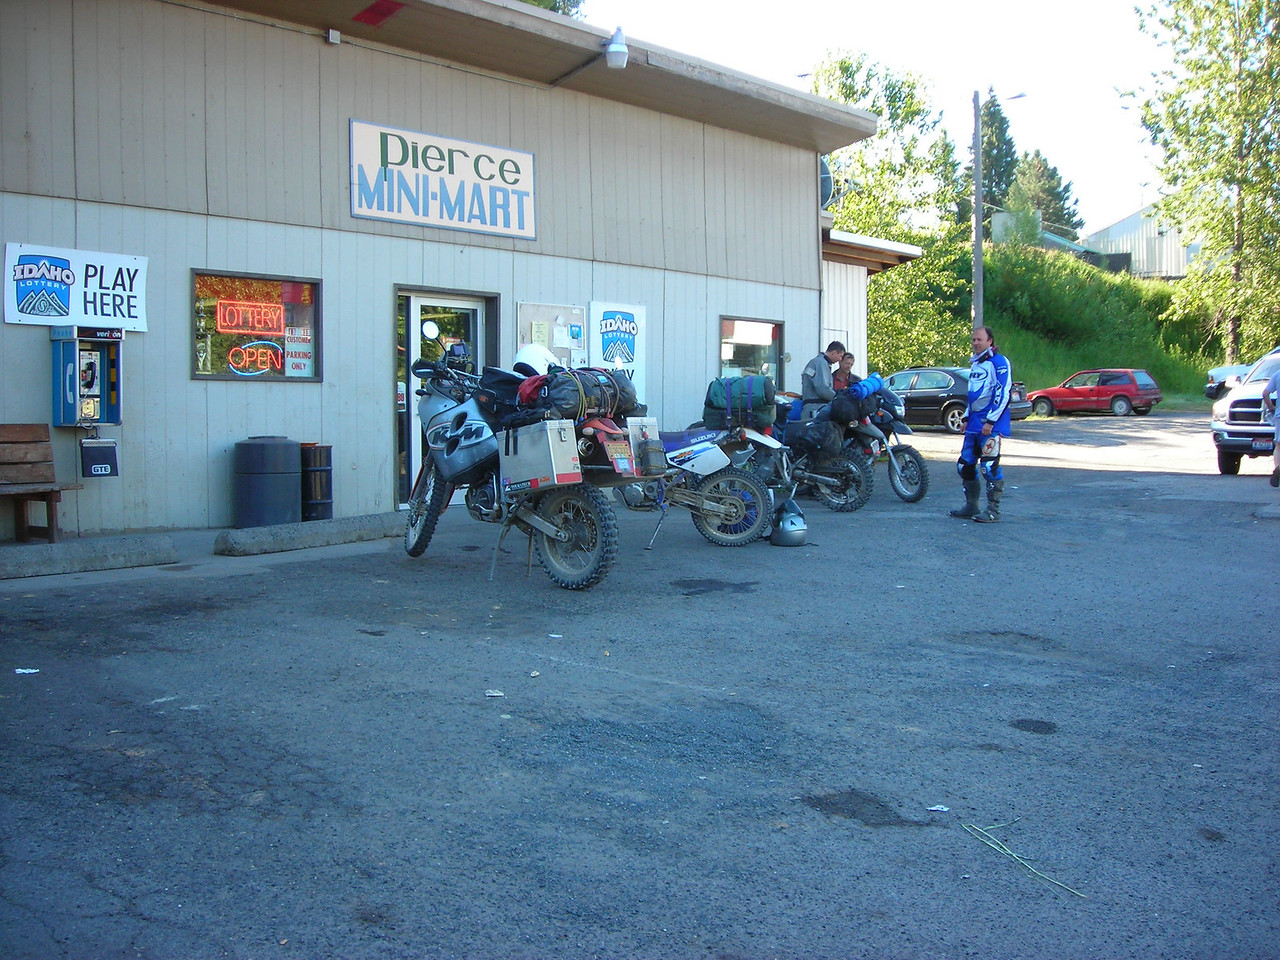 The Gang of Four in Pierce, ID